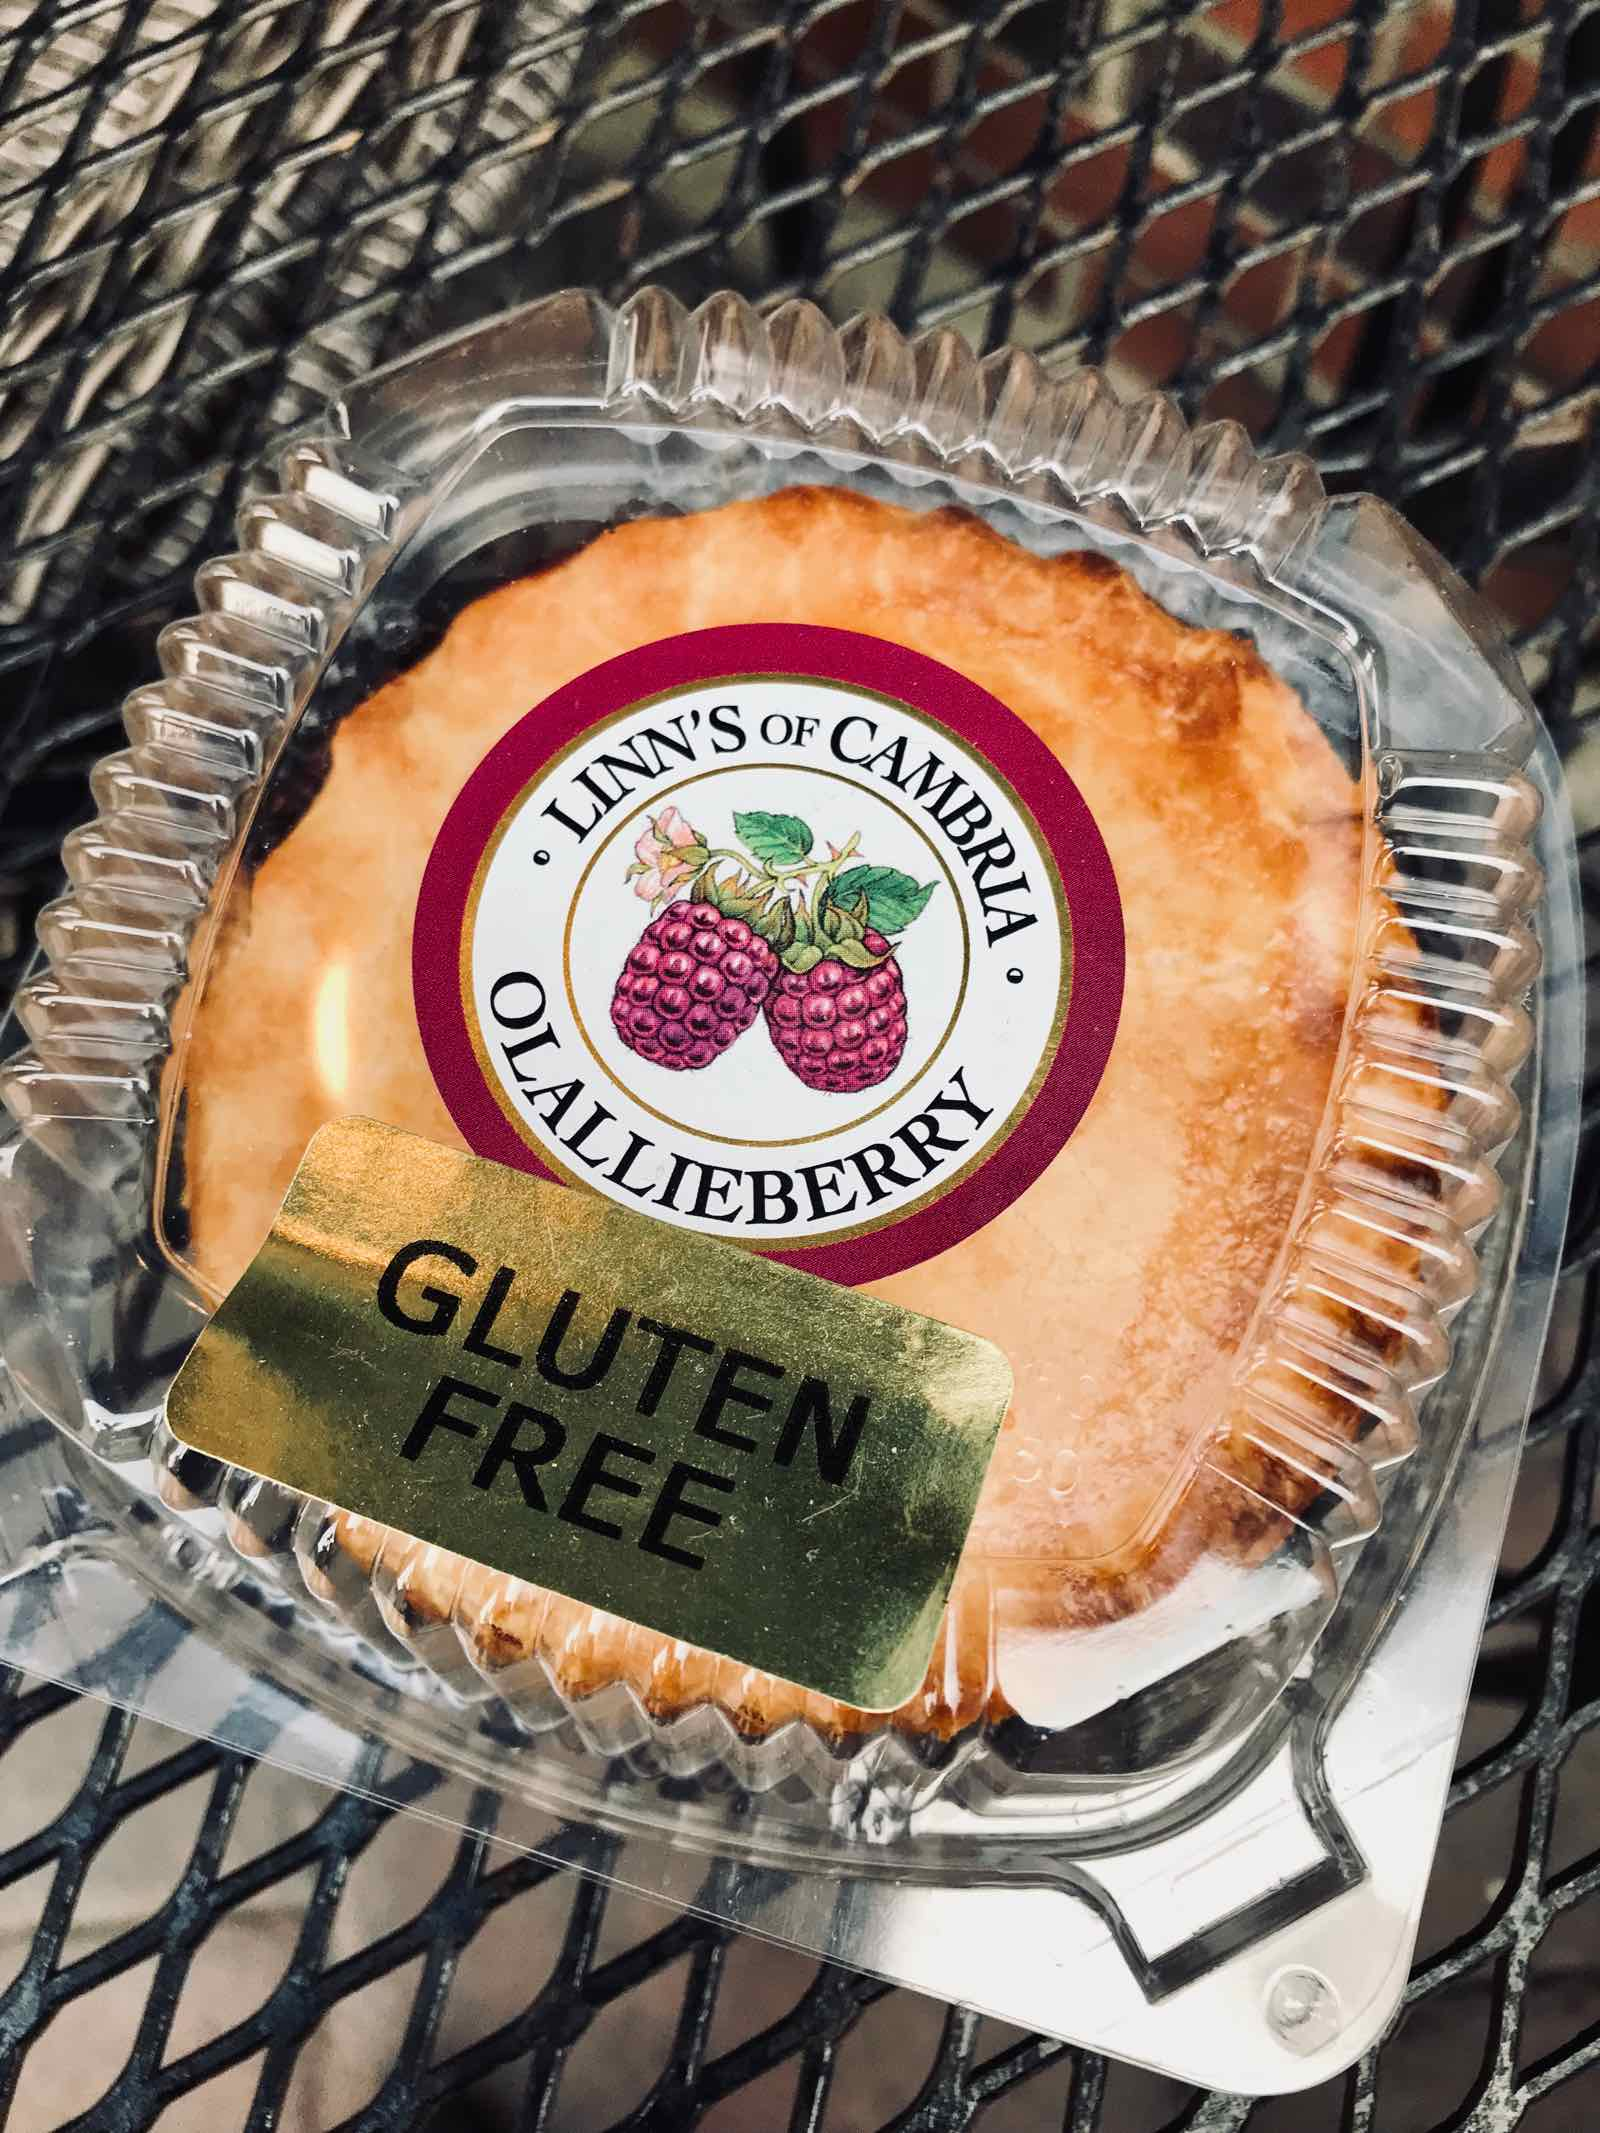 Gluten-Gree-Olallieberry-Pie-Linns-of-Cambria.jpg